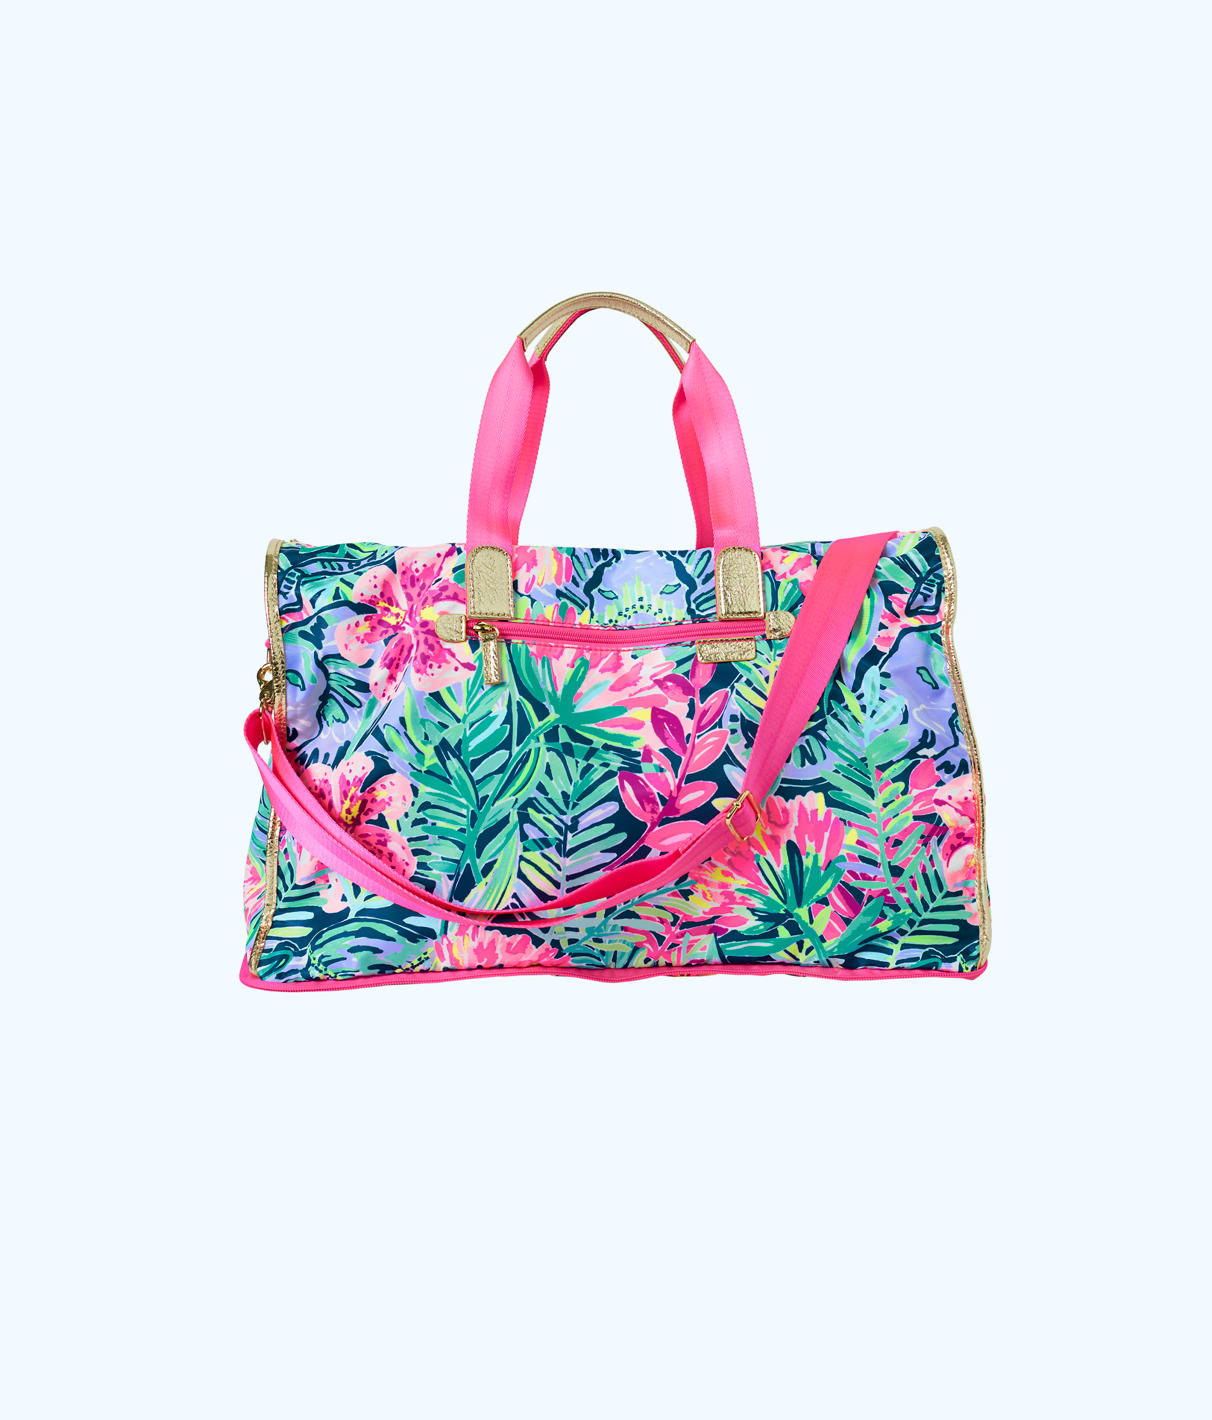 Lilly Pulitzer Palm Packable Weekender Tote Bag